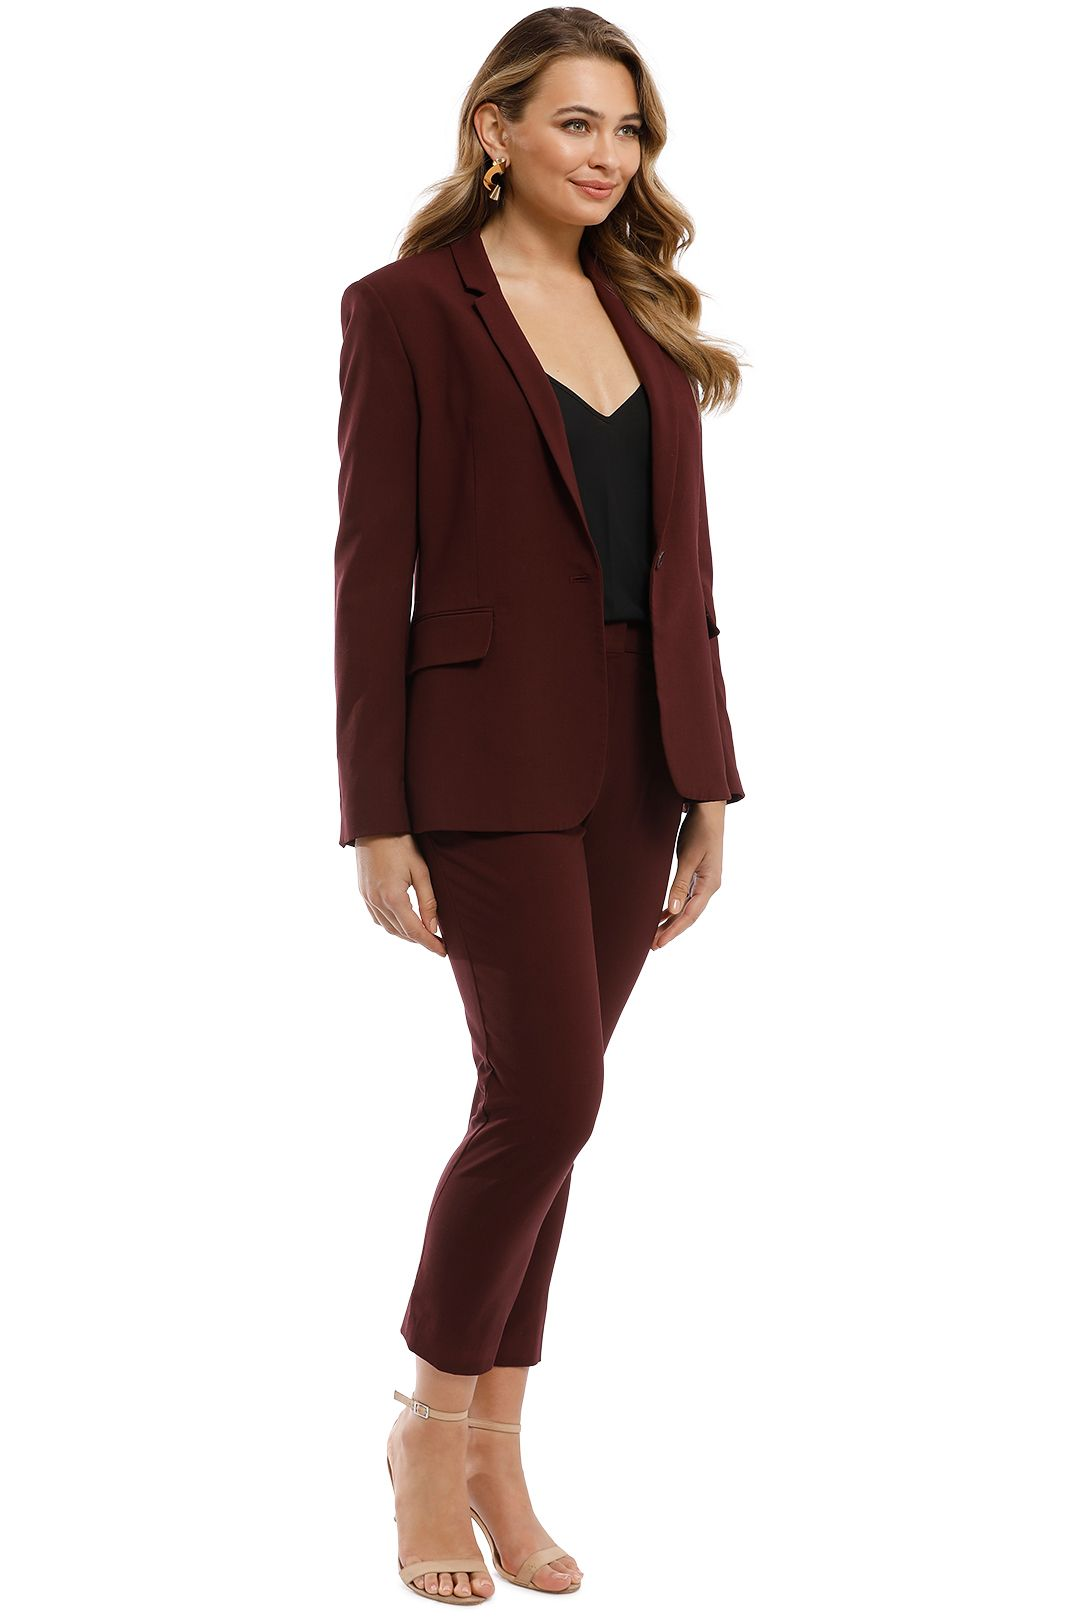 Theory - Essentials Jacket and Pant Set - Burgundy - Side